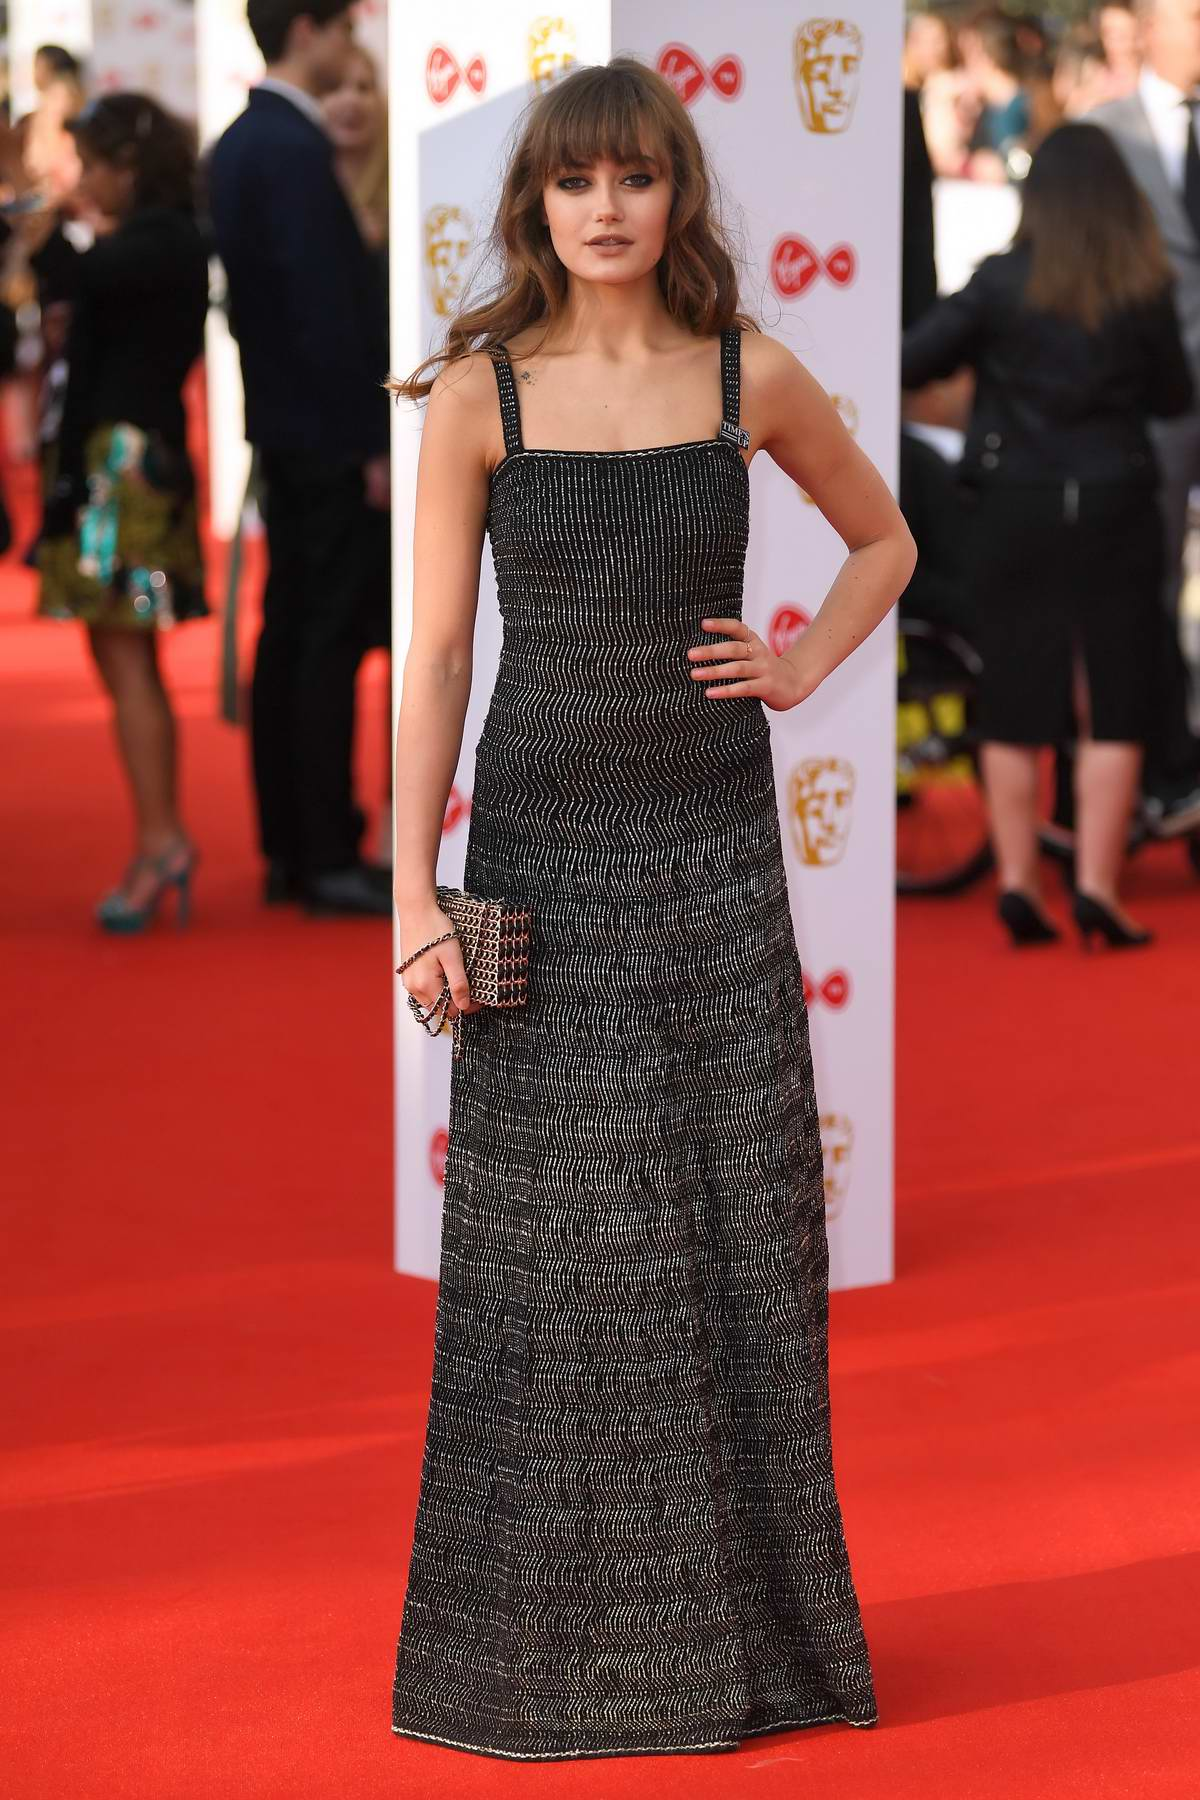 Ella Purnell attends British Academy Television Awards (BAFTA 2018) at Royal Festival Hall in London, UK